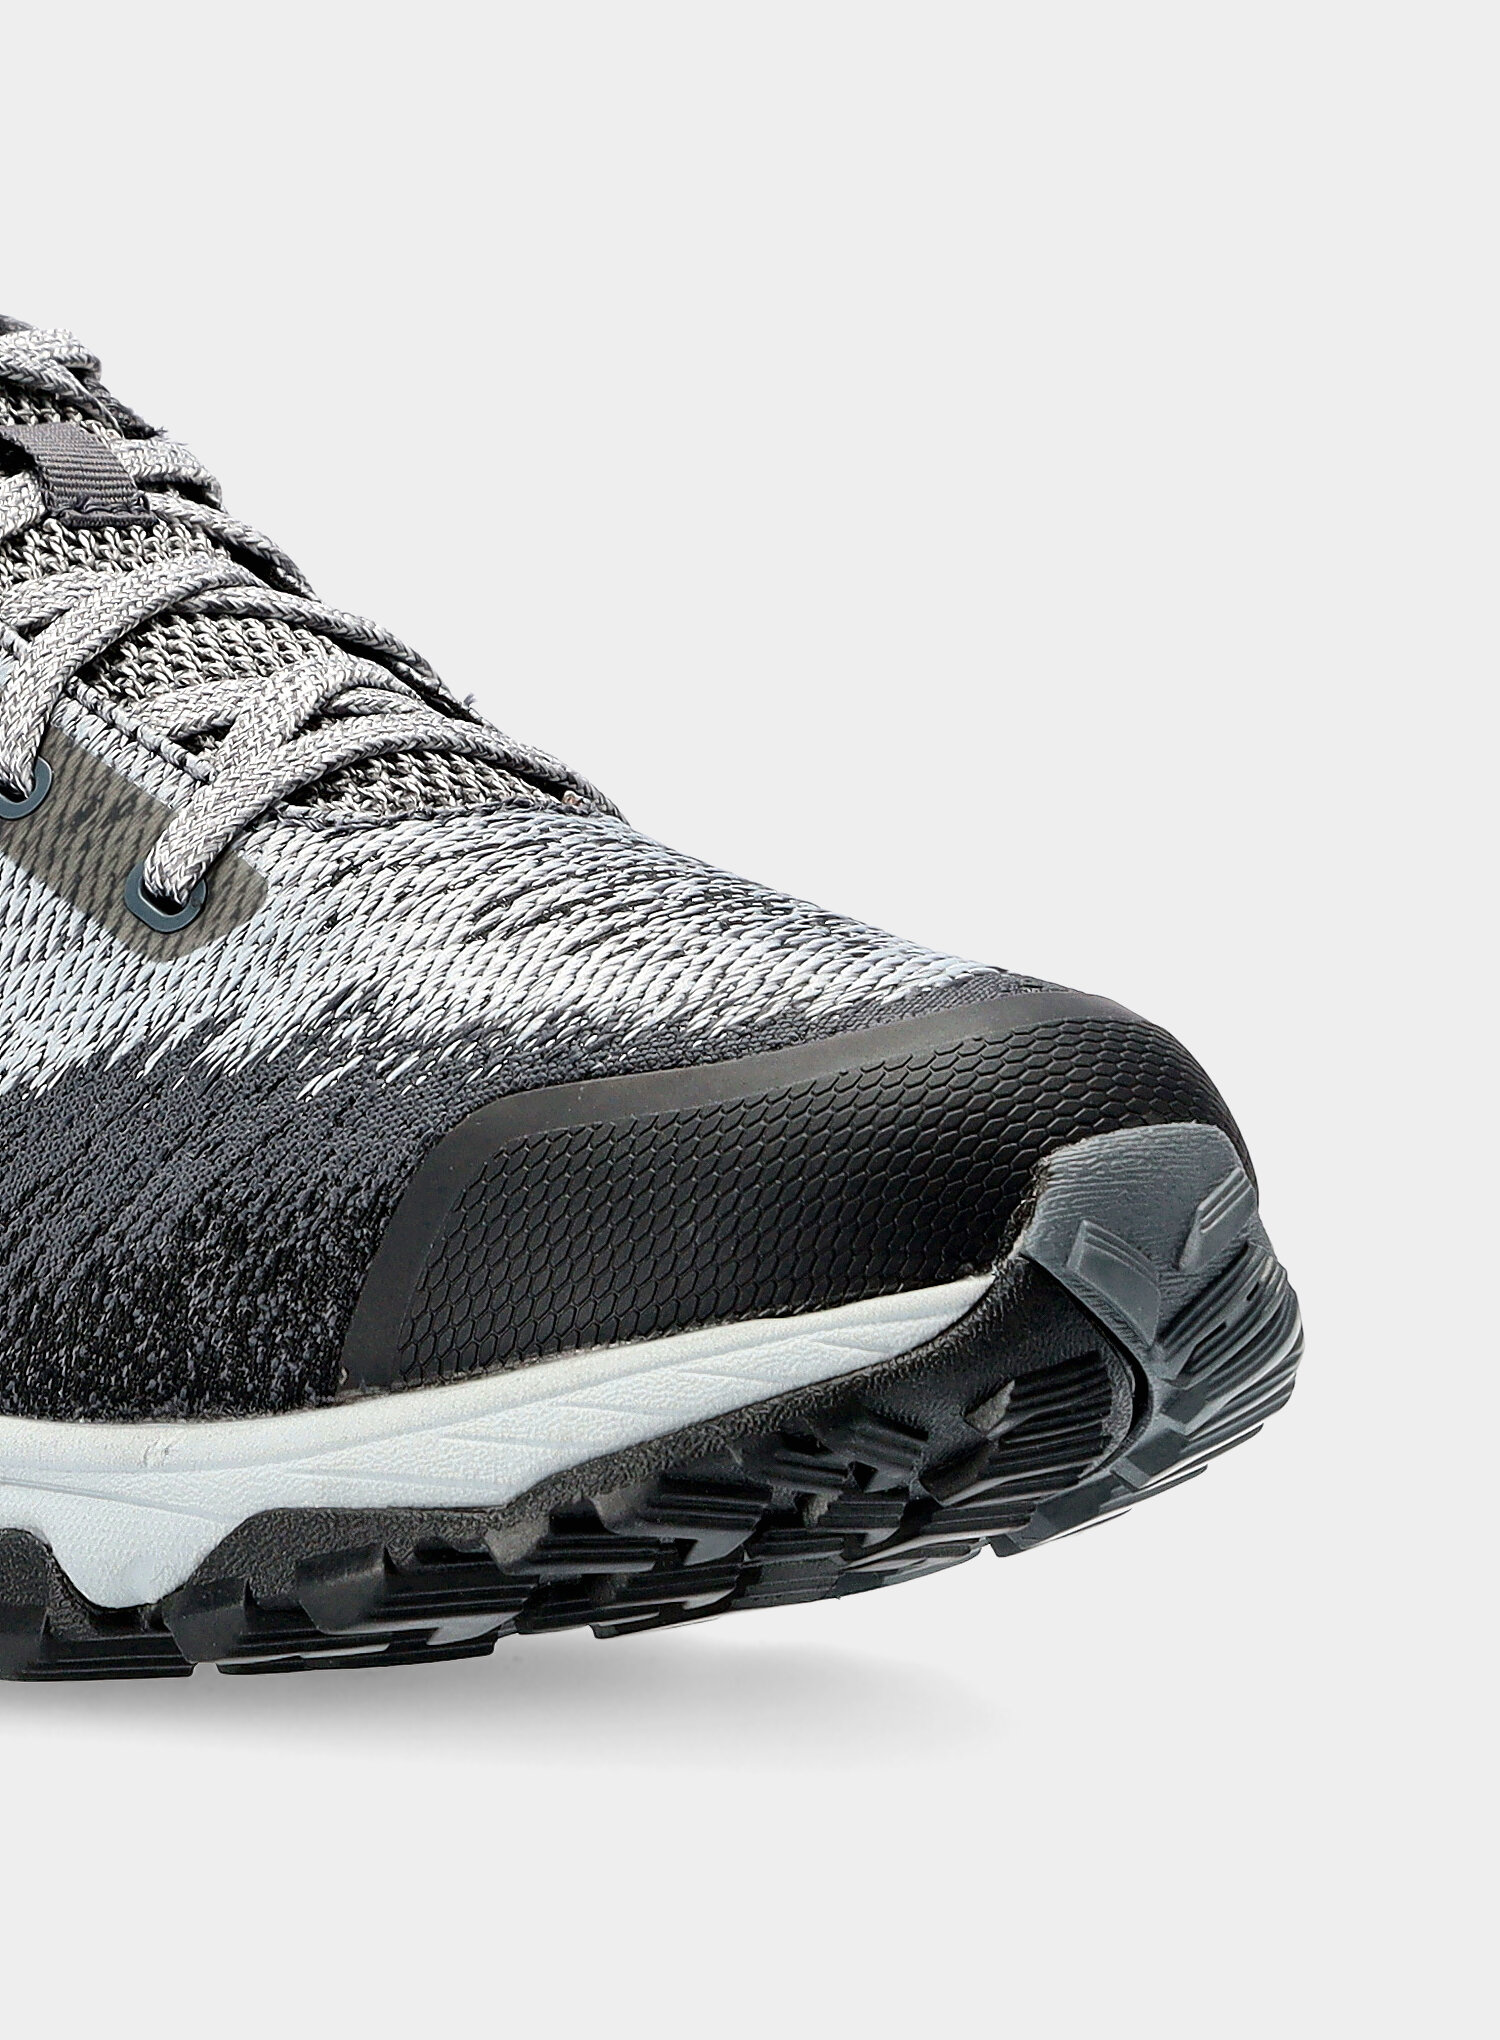 Buty The North Face Ultra Fastpack IV FutureLight - grey - zdjęcie nr. 5